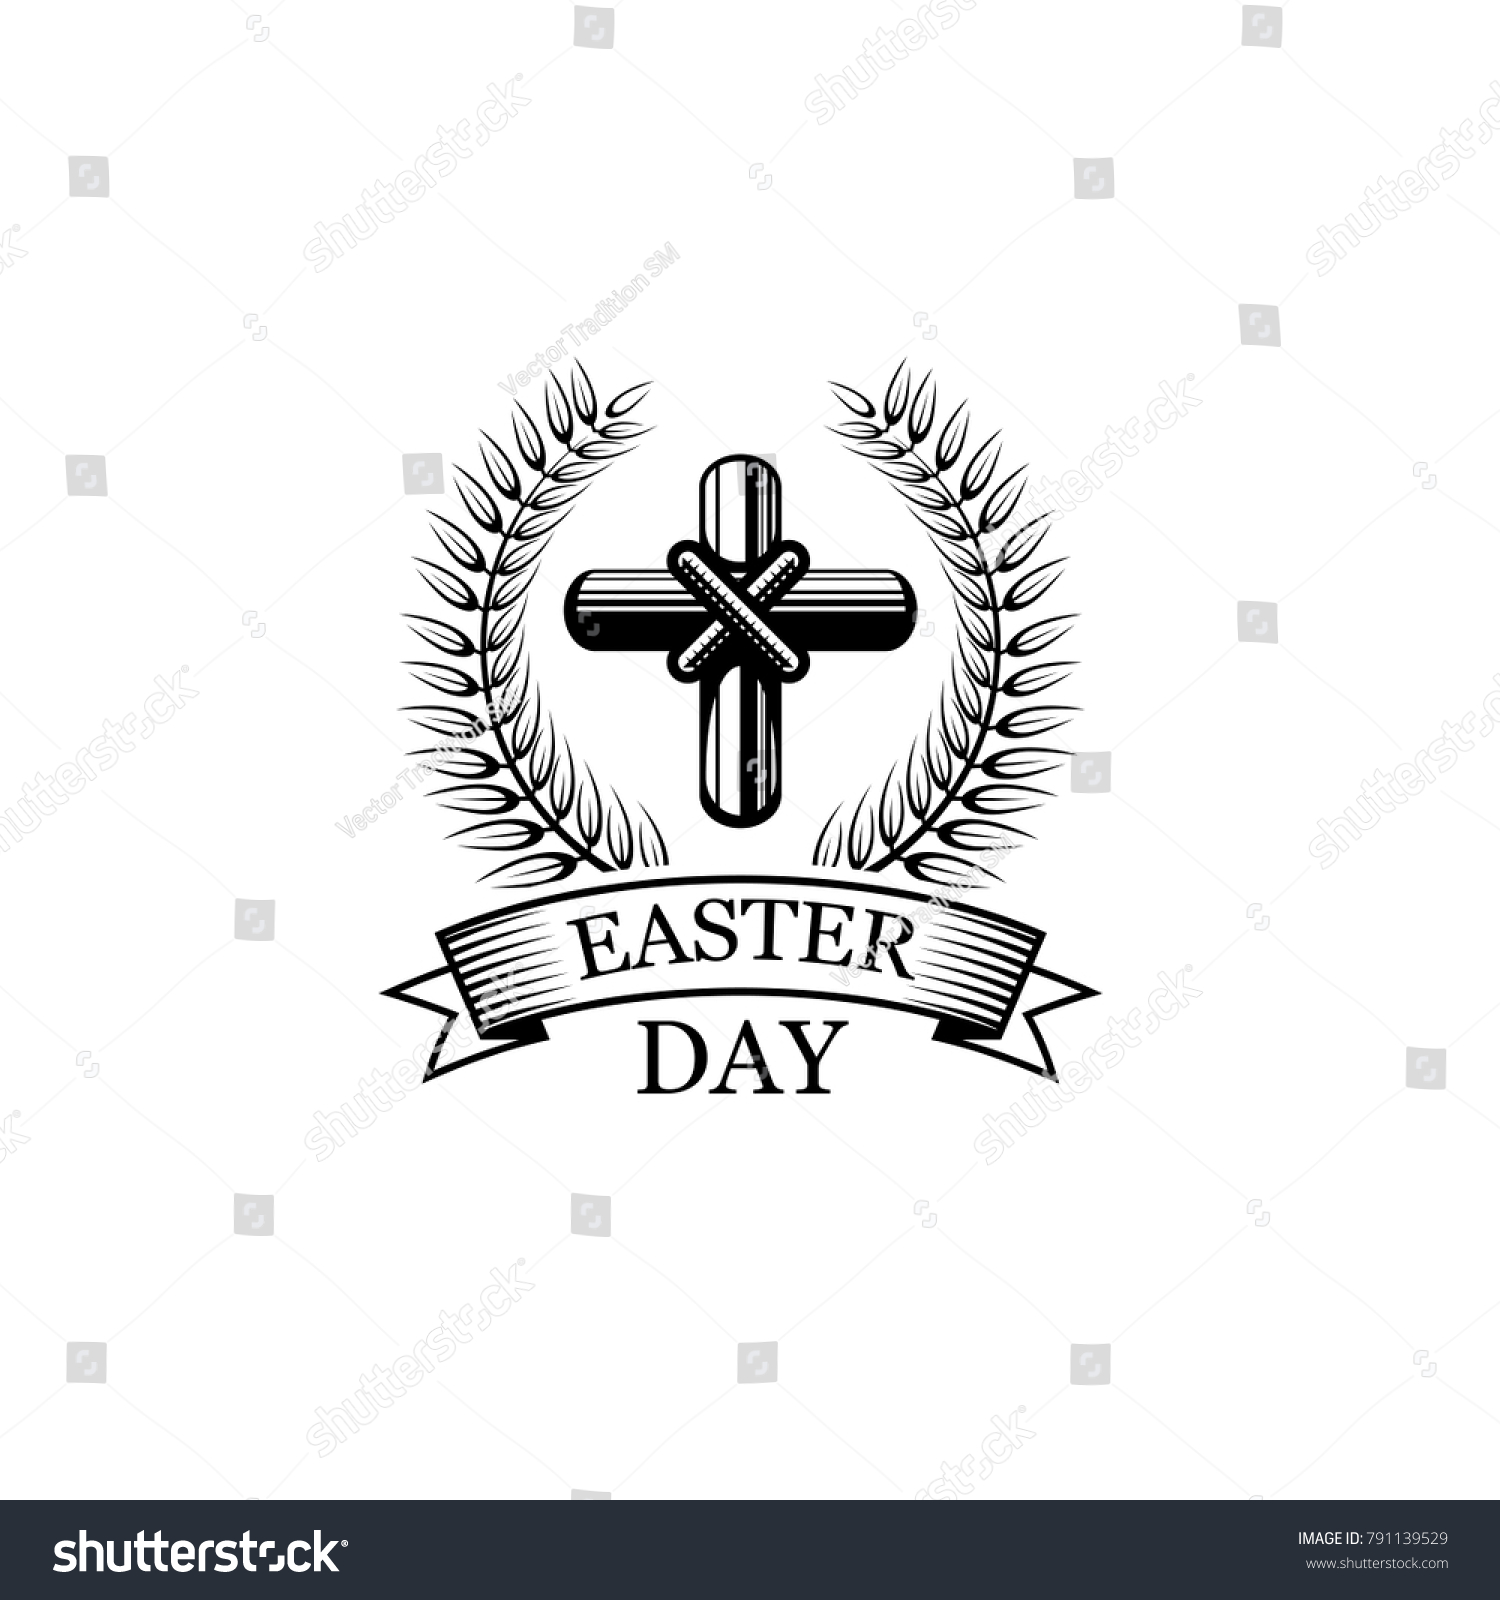 Easter day icon crucifix cross laurel stock vector 791139529 easter day icon of crucifix cross laurel branch and ribbon vector isolated symbol of biocorpaavc Choice Image